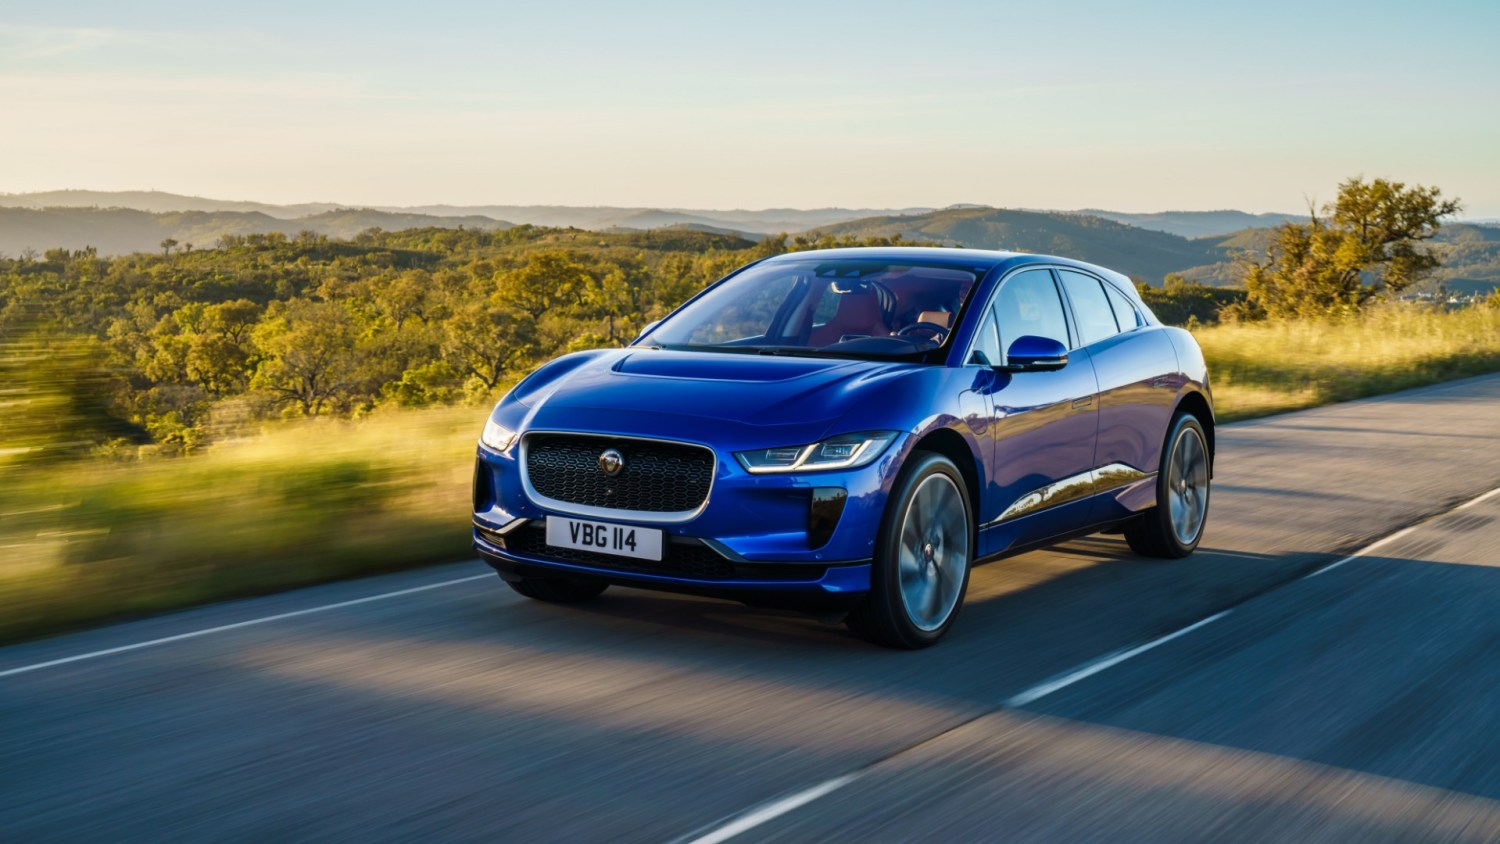 Jaguar wants recycle more in its cars